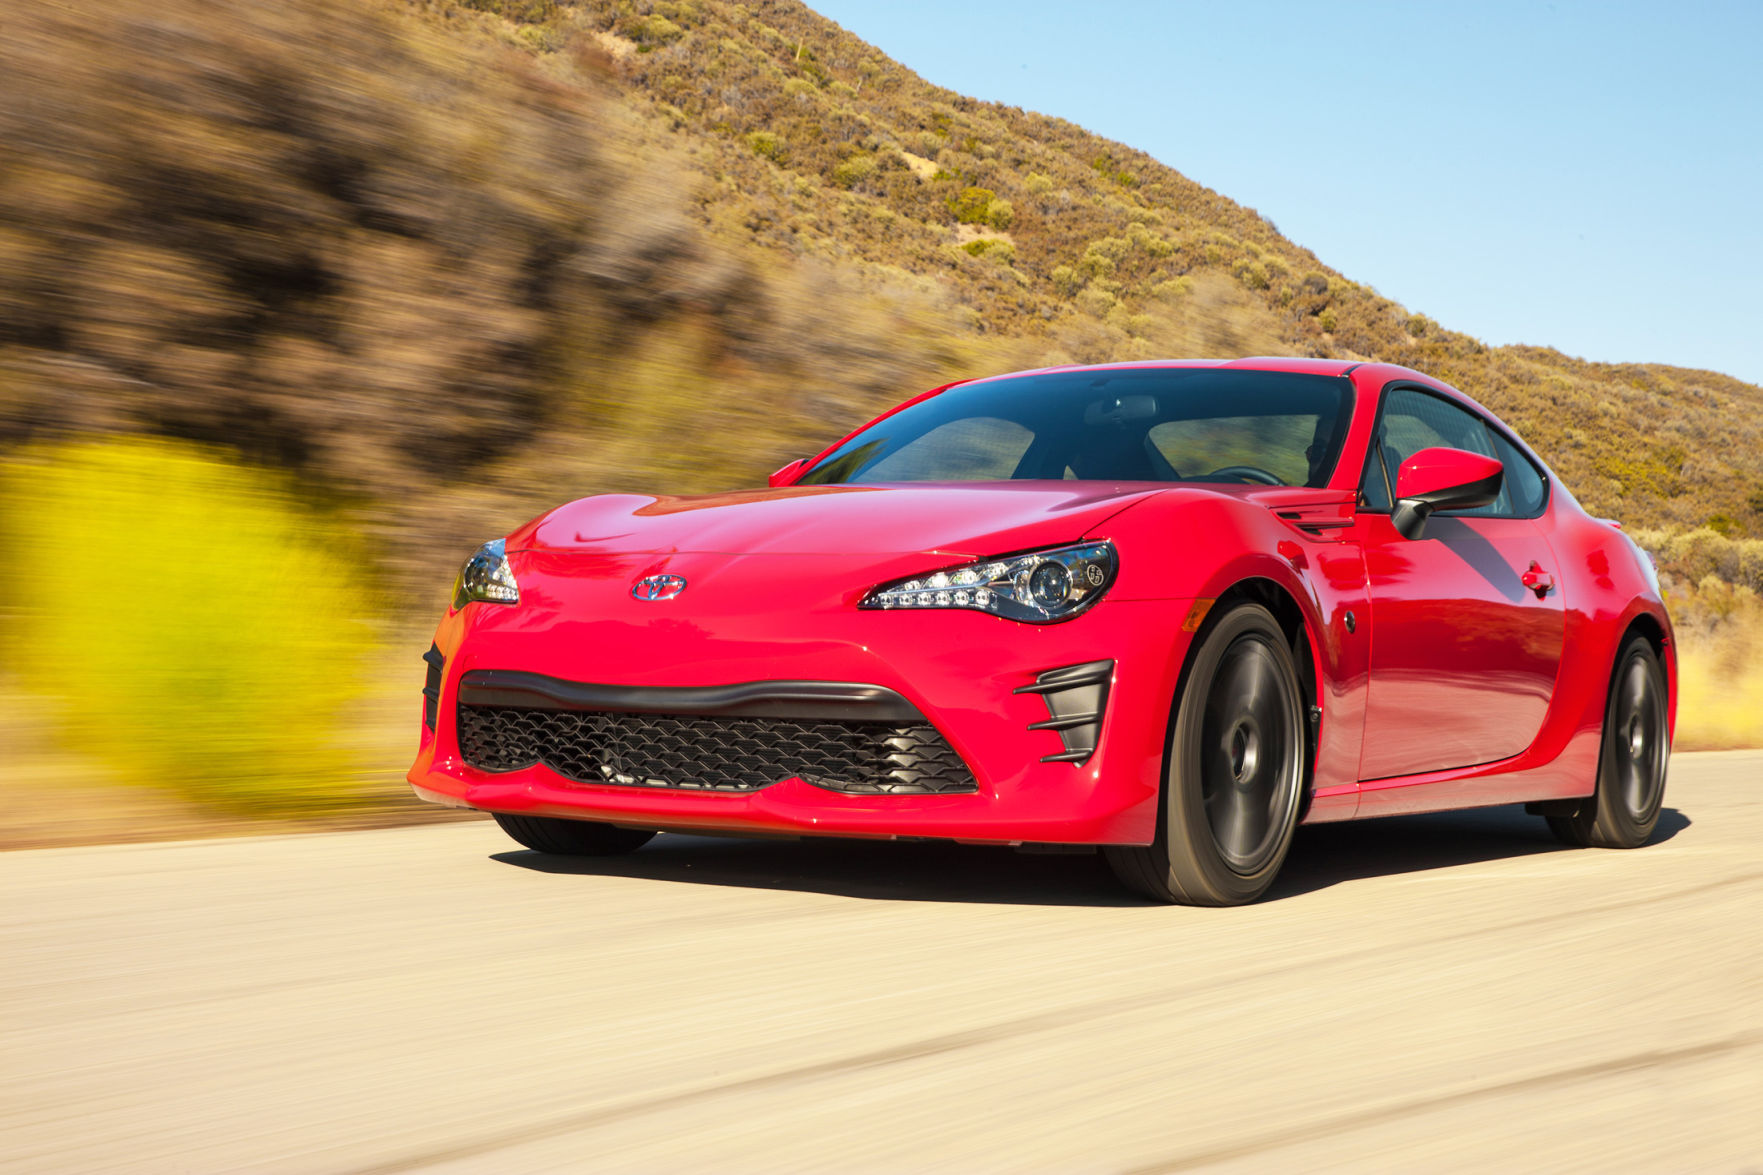 The 2017 Toyota 86, Which Was Known Last Year As The Scion FR S, Is A  Purpose Built Sports Car With Remarkable, Precise Handling That Makes The  Driver Feel ...